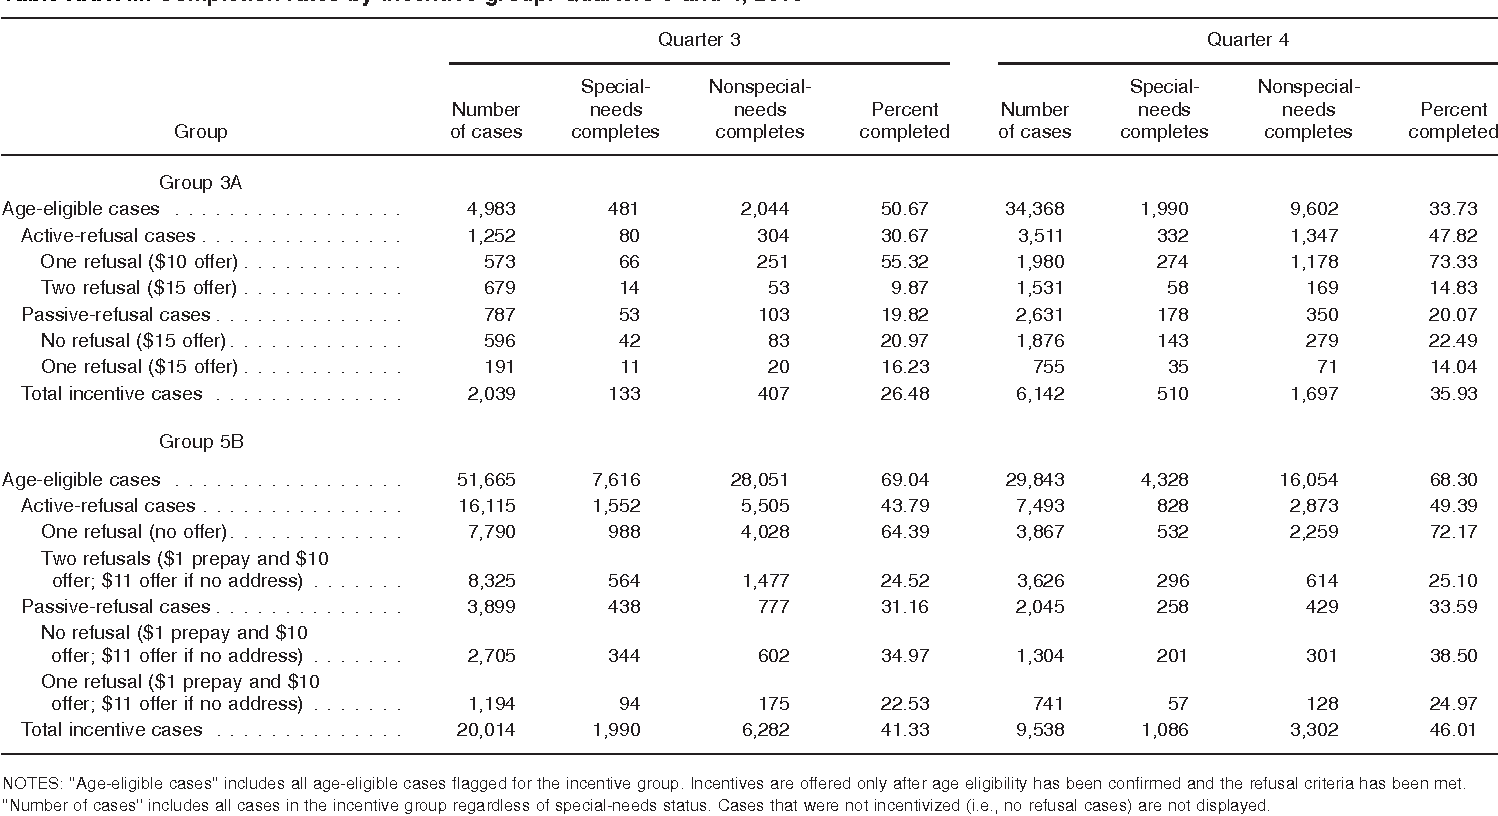 Table XXXVIII. Completion rates by incentive group: Quarters 3 and 4, 2010